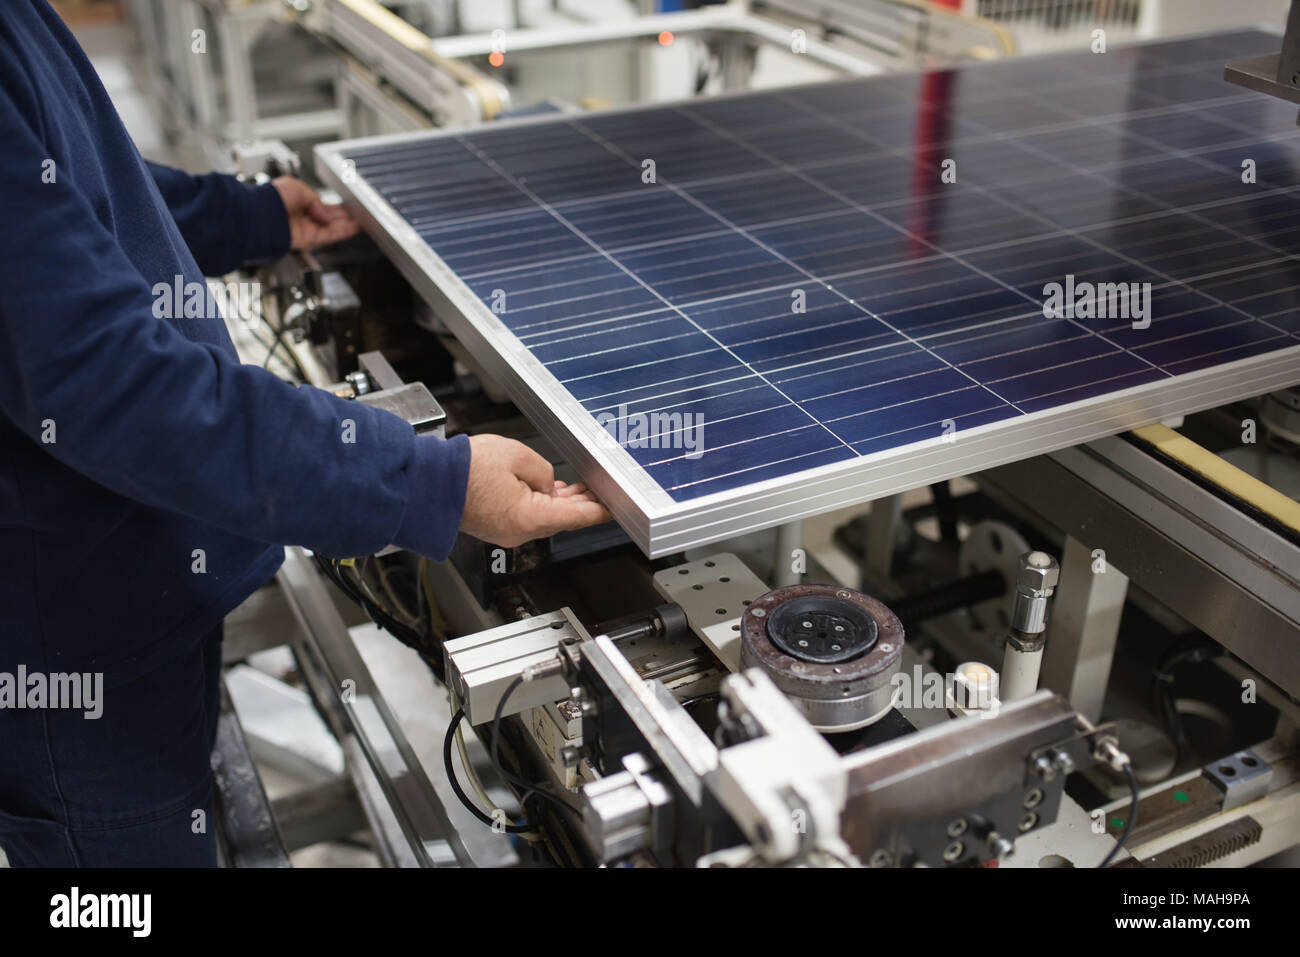 production of solar panels, man working in factory - Stock Image